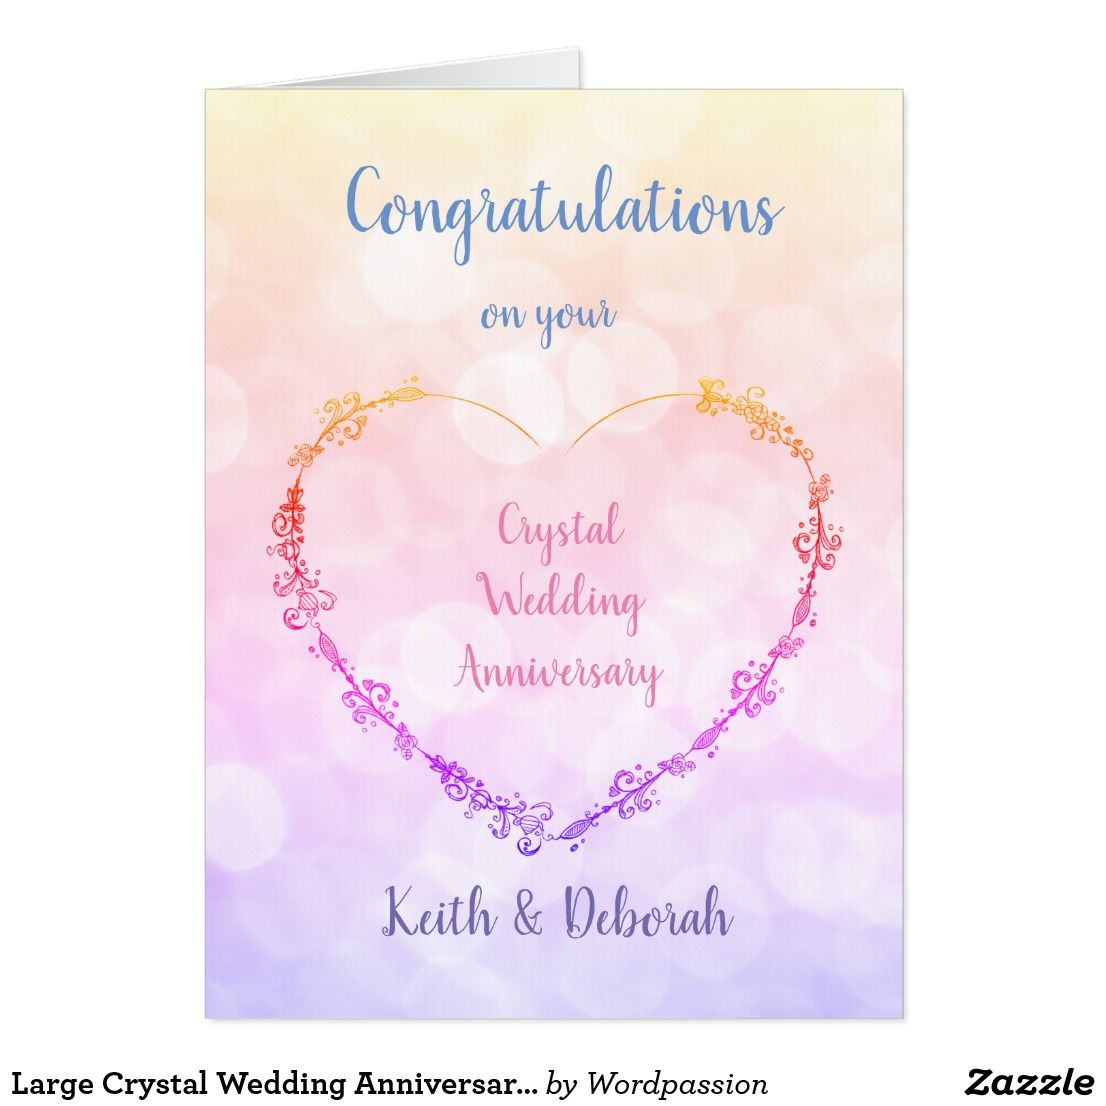 Large Crystal Wedding Anniversary design Card | Giant Greeting Cards ...